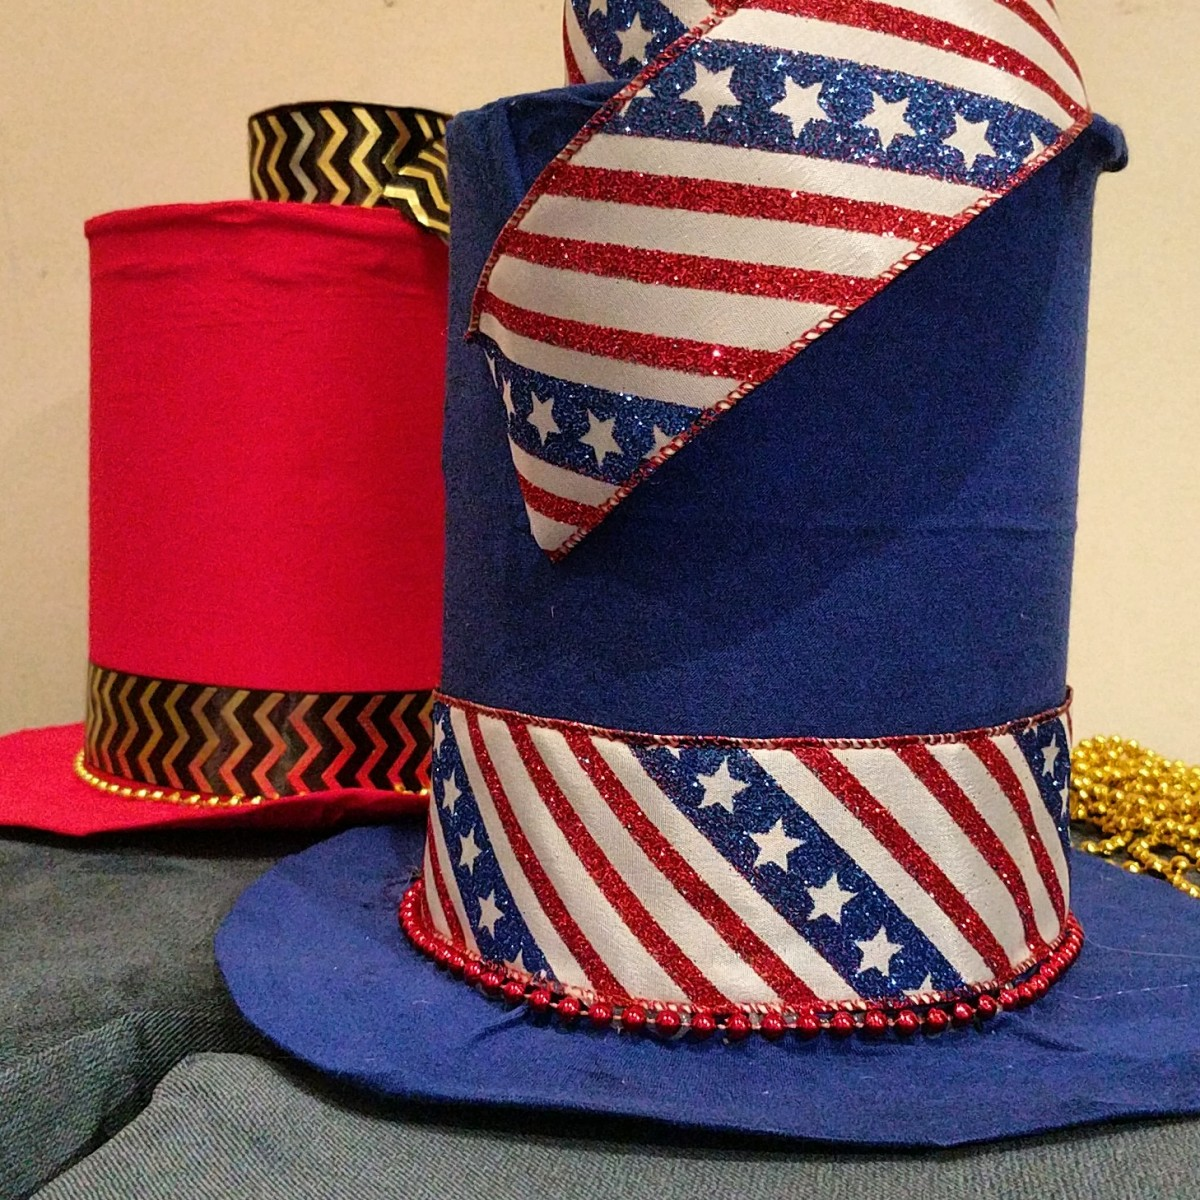 Hats post fabric, ribbon bands, and Mardi Gras beads.